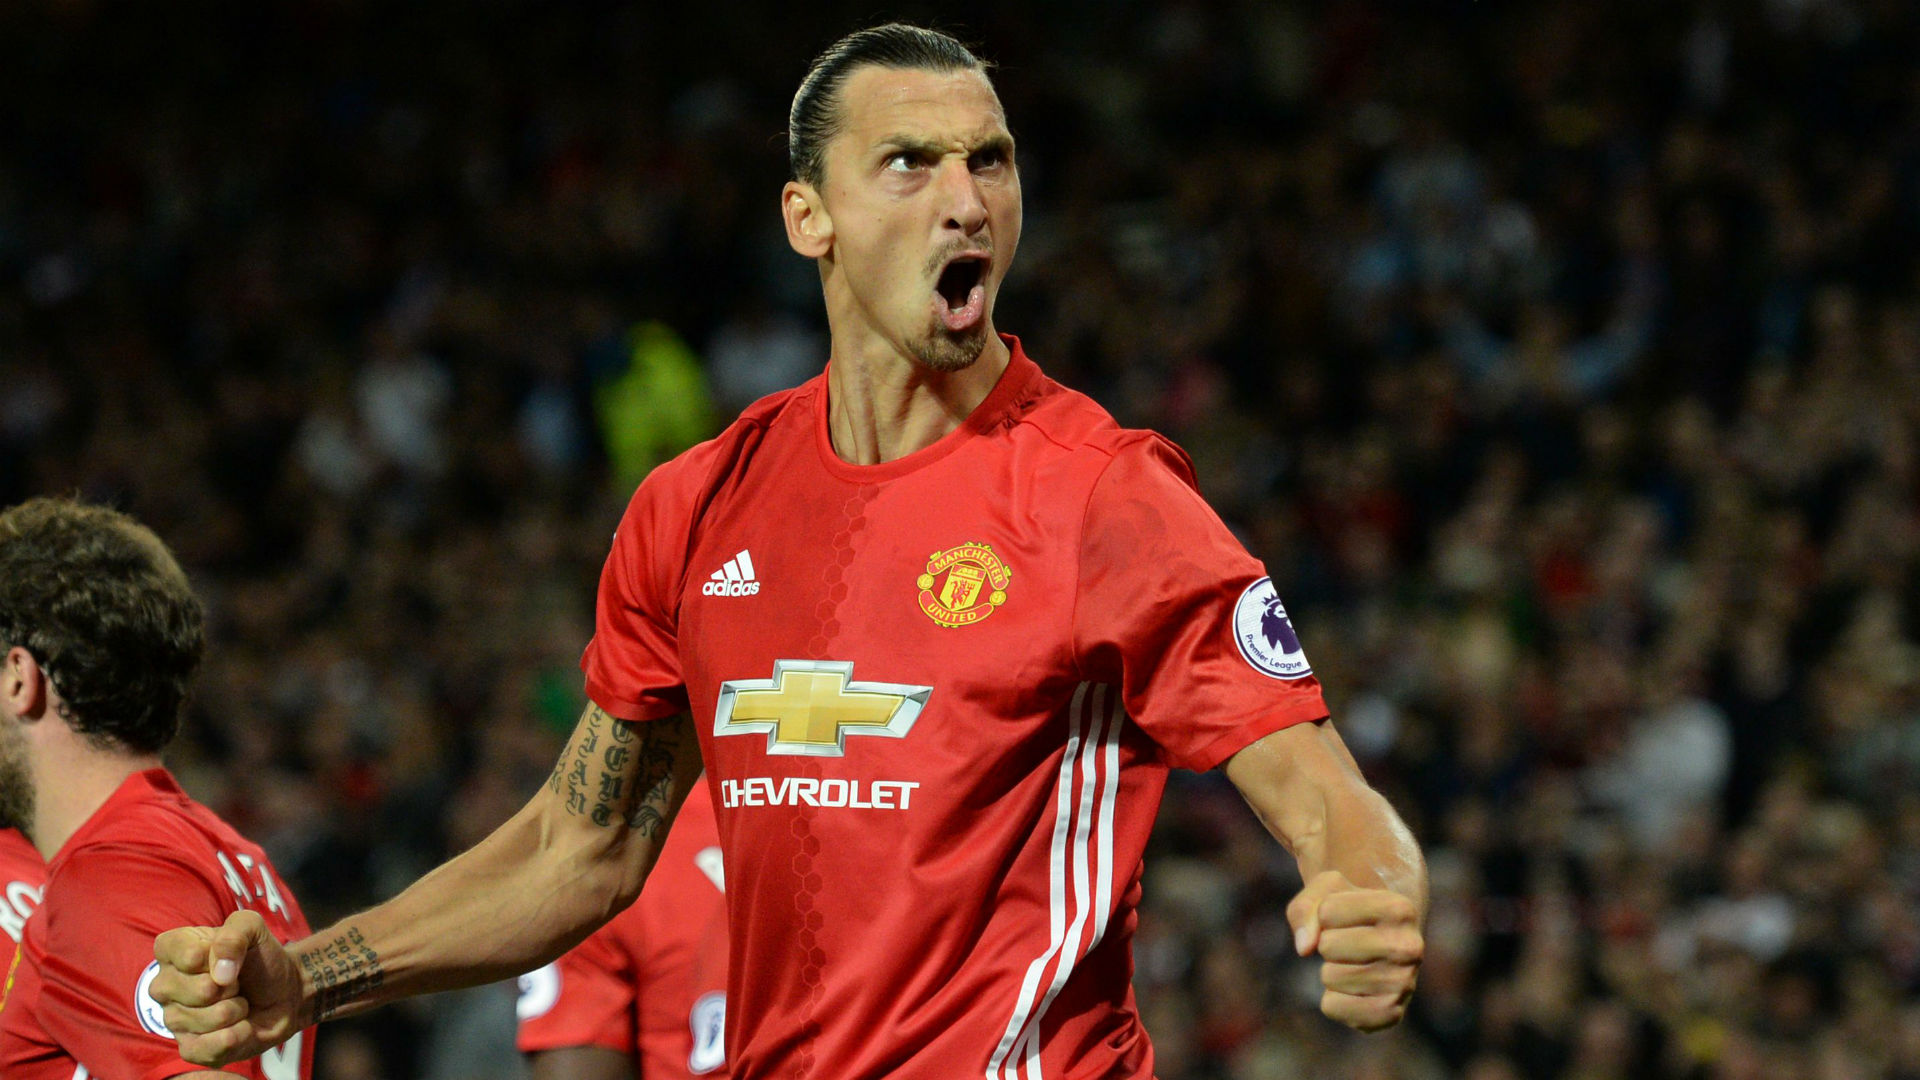 Juan Mata: How Zlatan Ibrahimovic forced Manchester United players to improve